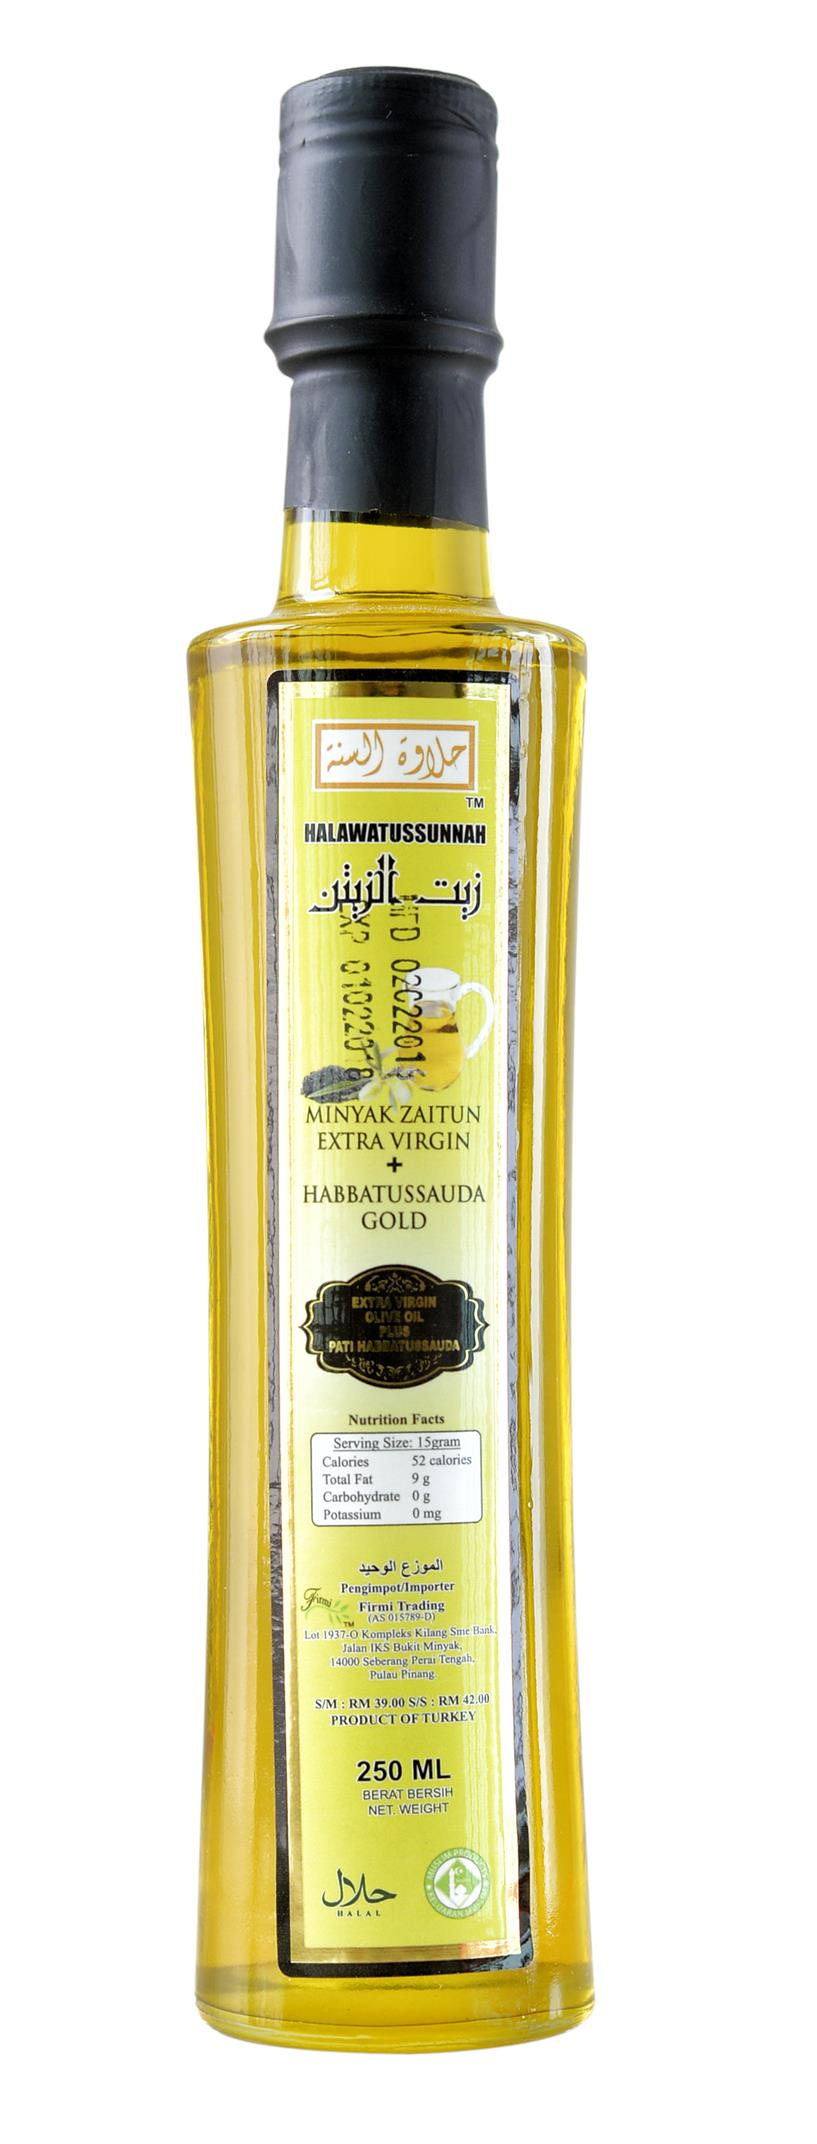 Extra Virgin Olive Oil and Gold Black Seed Oil 250ml